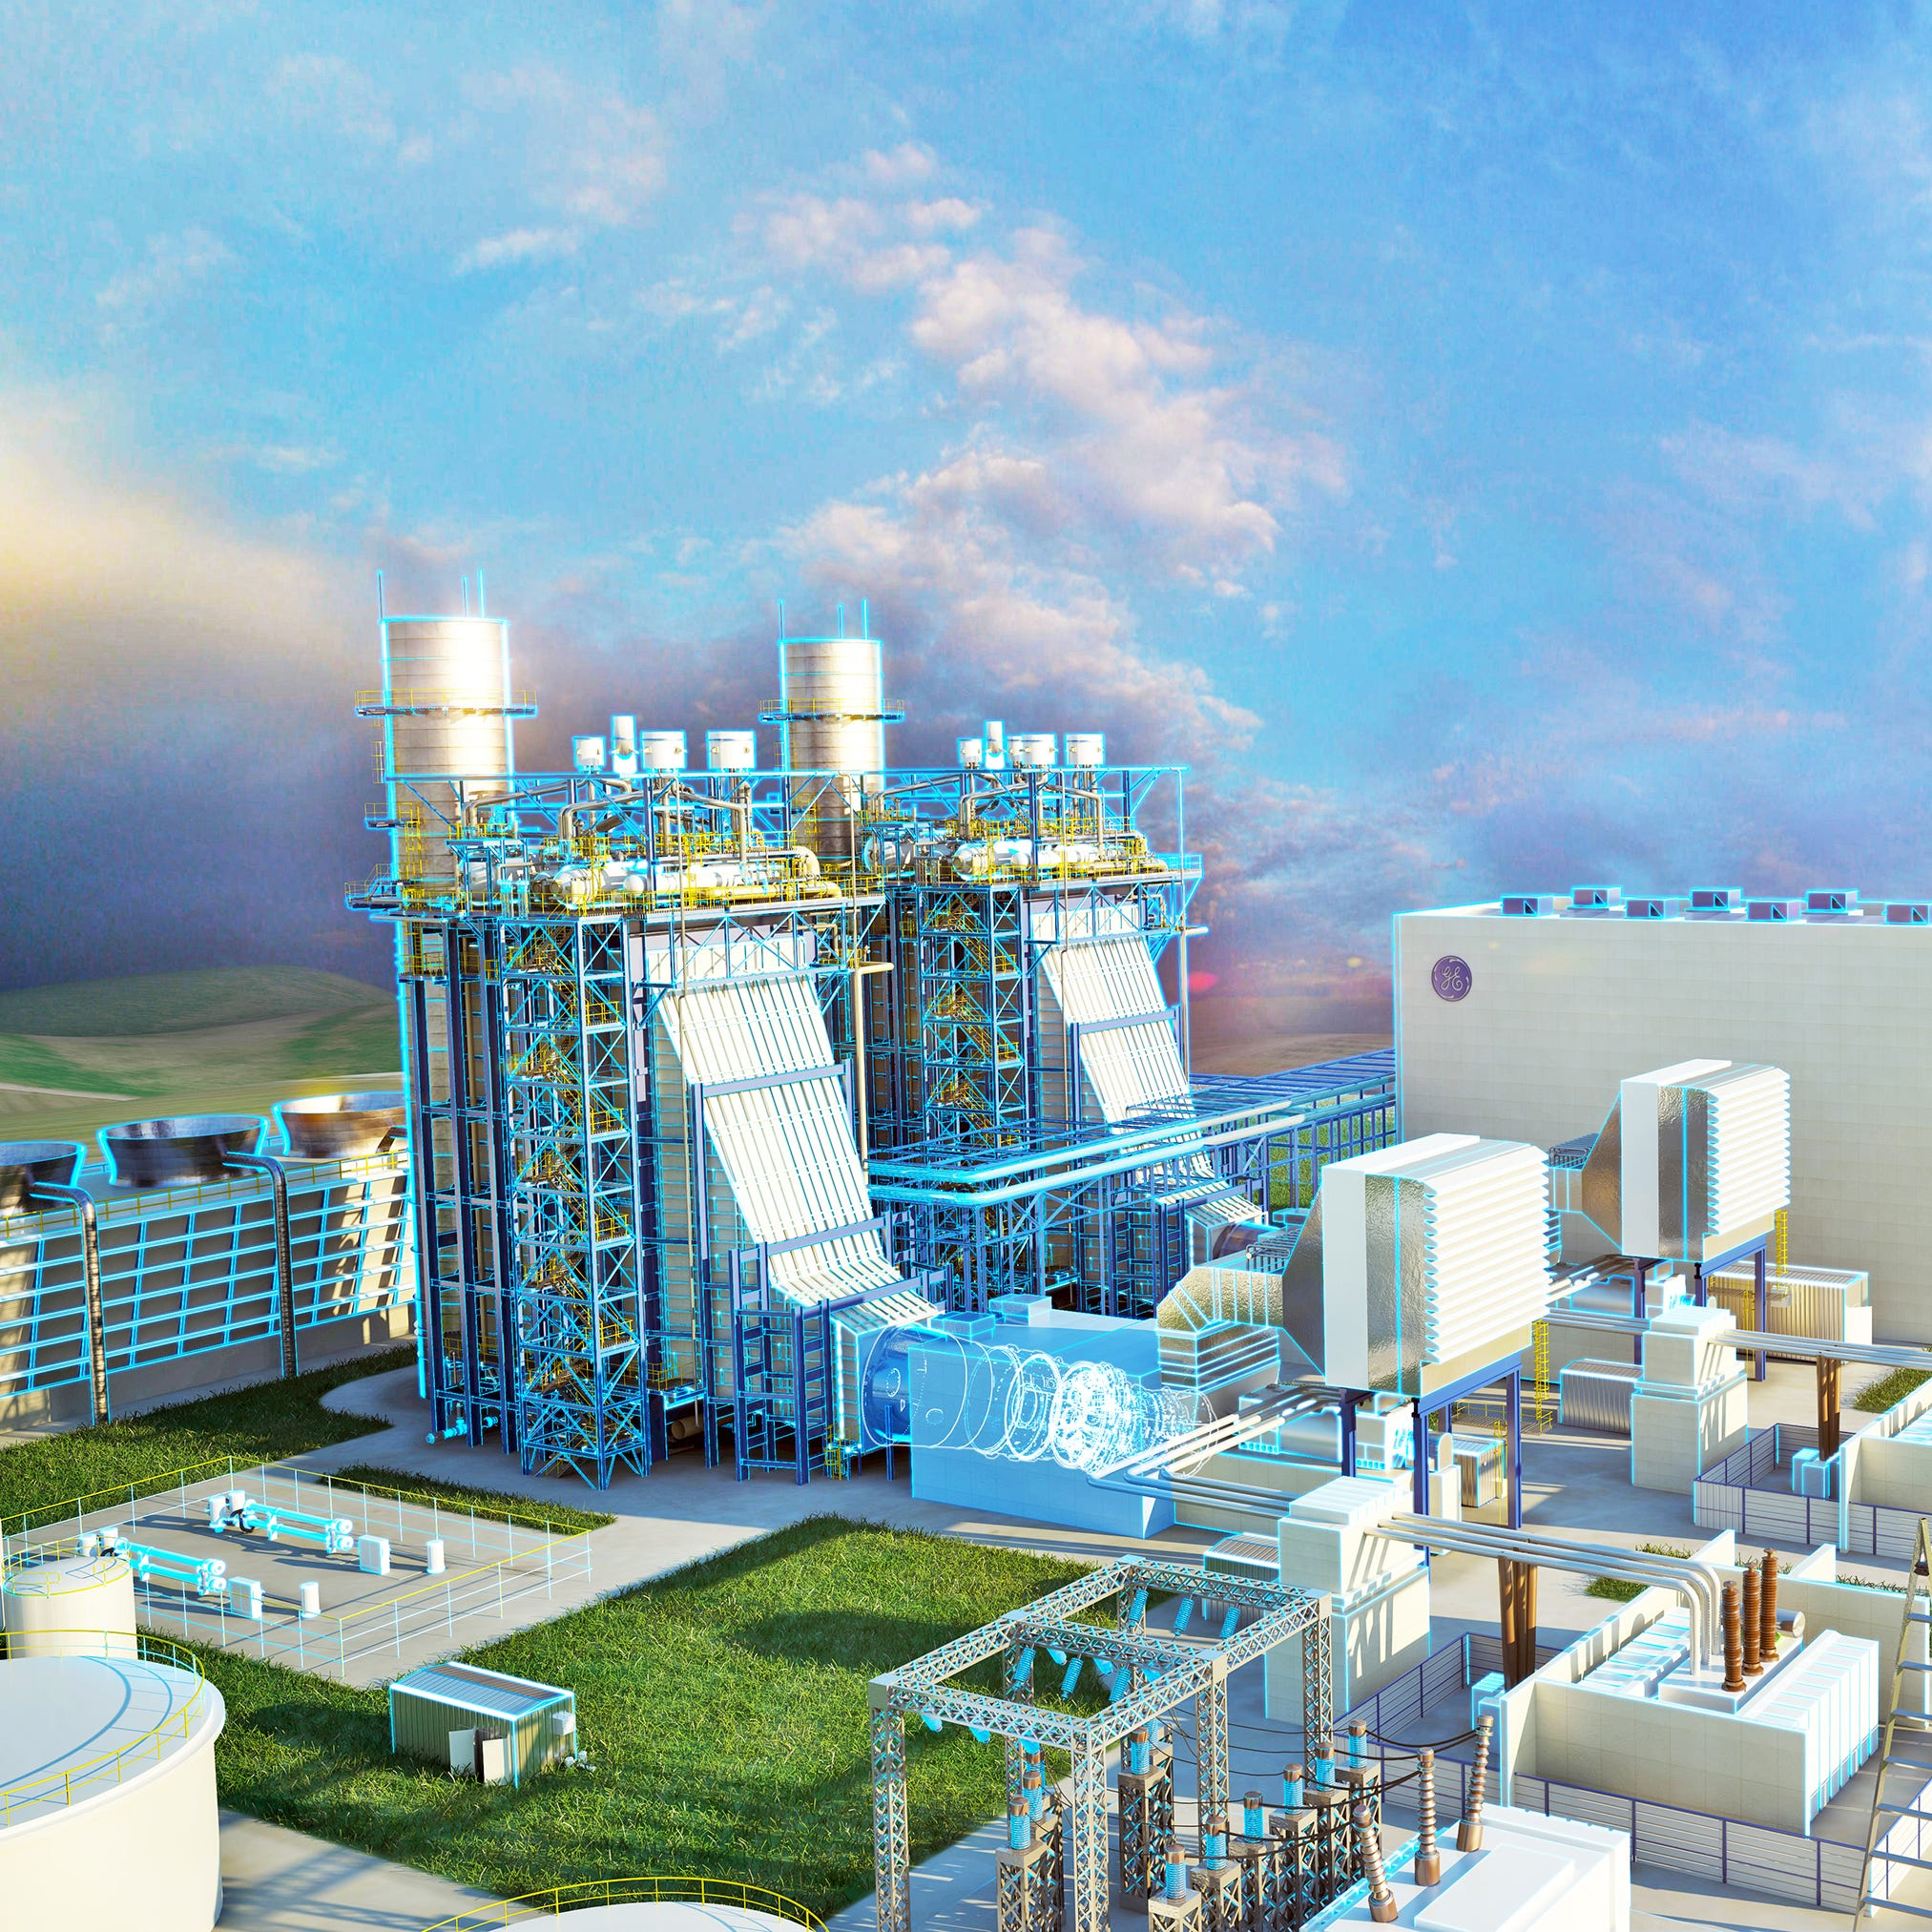 DTE breaks ground on St. Clair Co. power plant